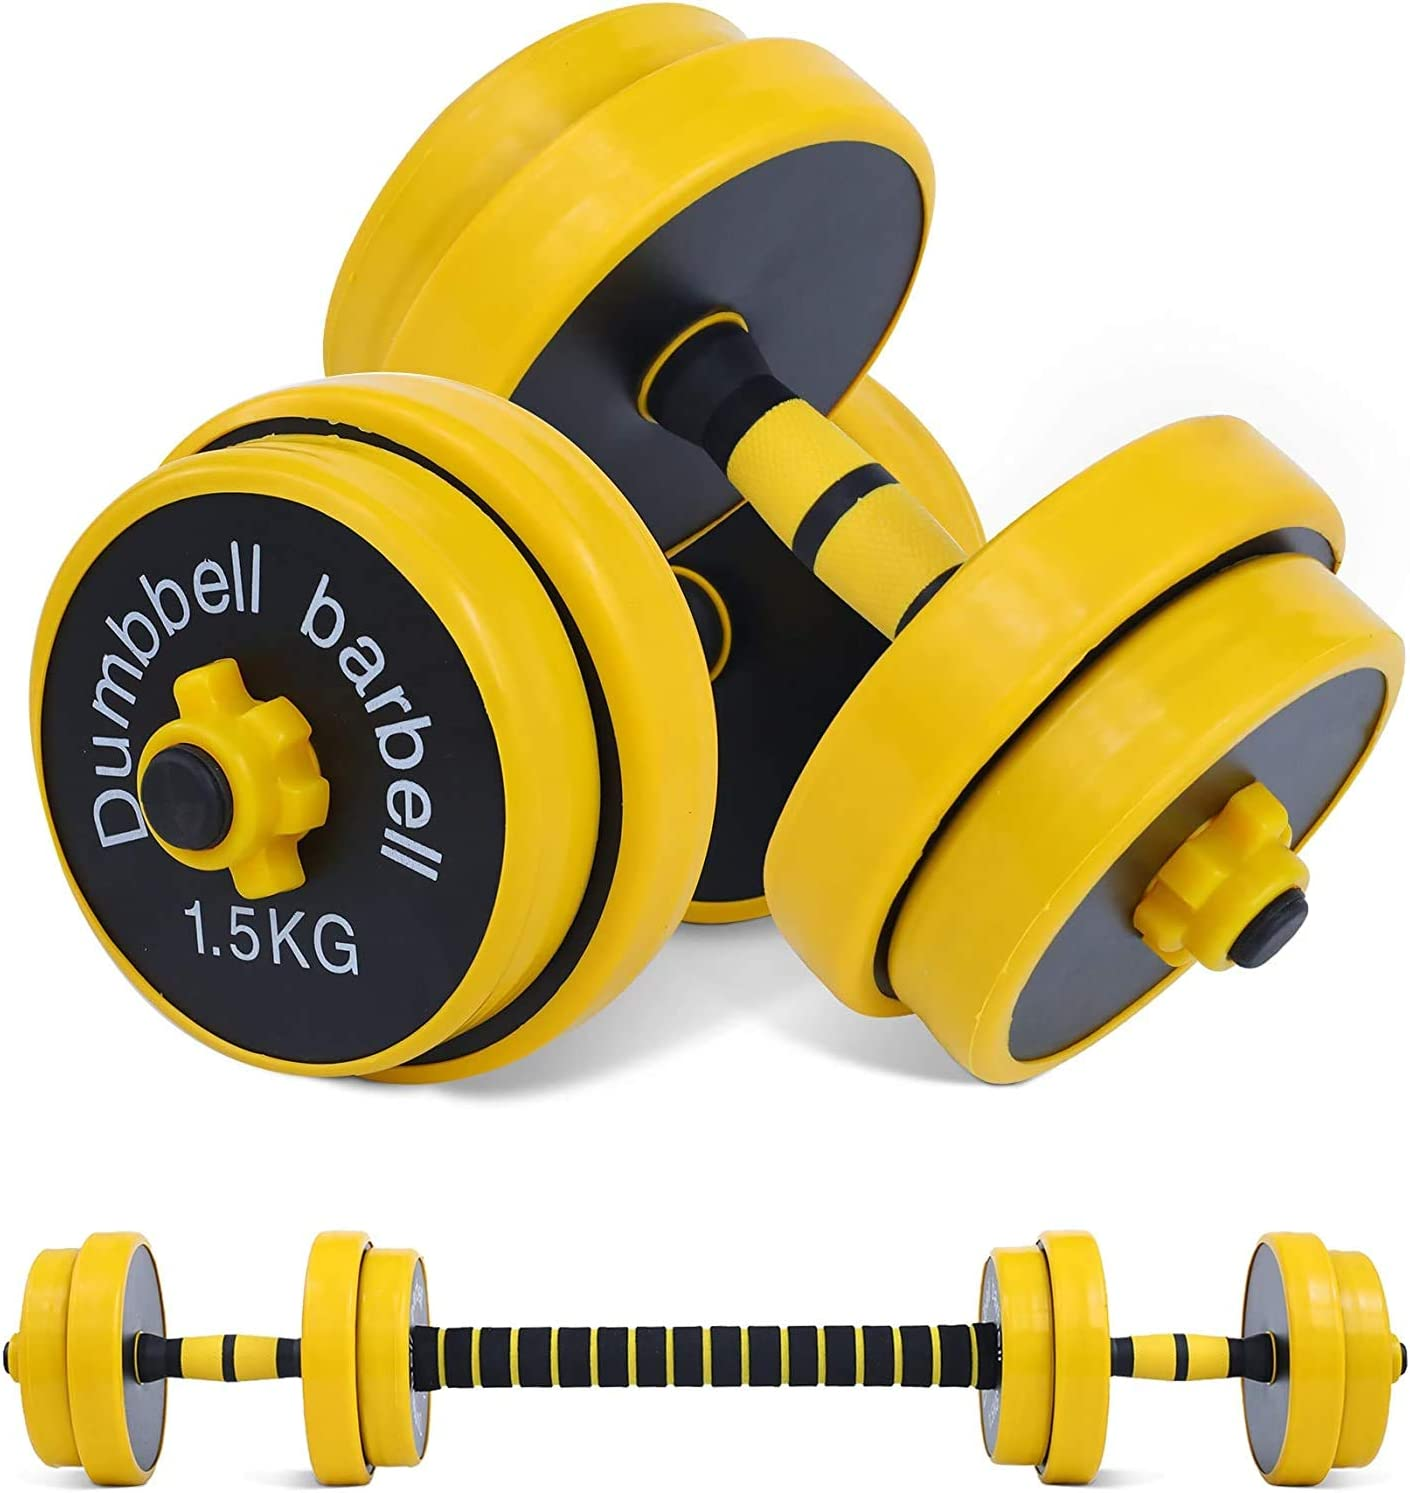 Fuxion 22LB Adjustable Dumbbell Barbell Pair   Free 2-in-1 Set, Non-Slip Neoprene, Purpose, Home, Gym, Office     Hand Weights, 22 LB or 11 LB, 22 pounds Total / 11 Each